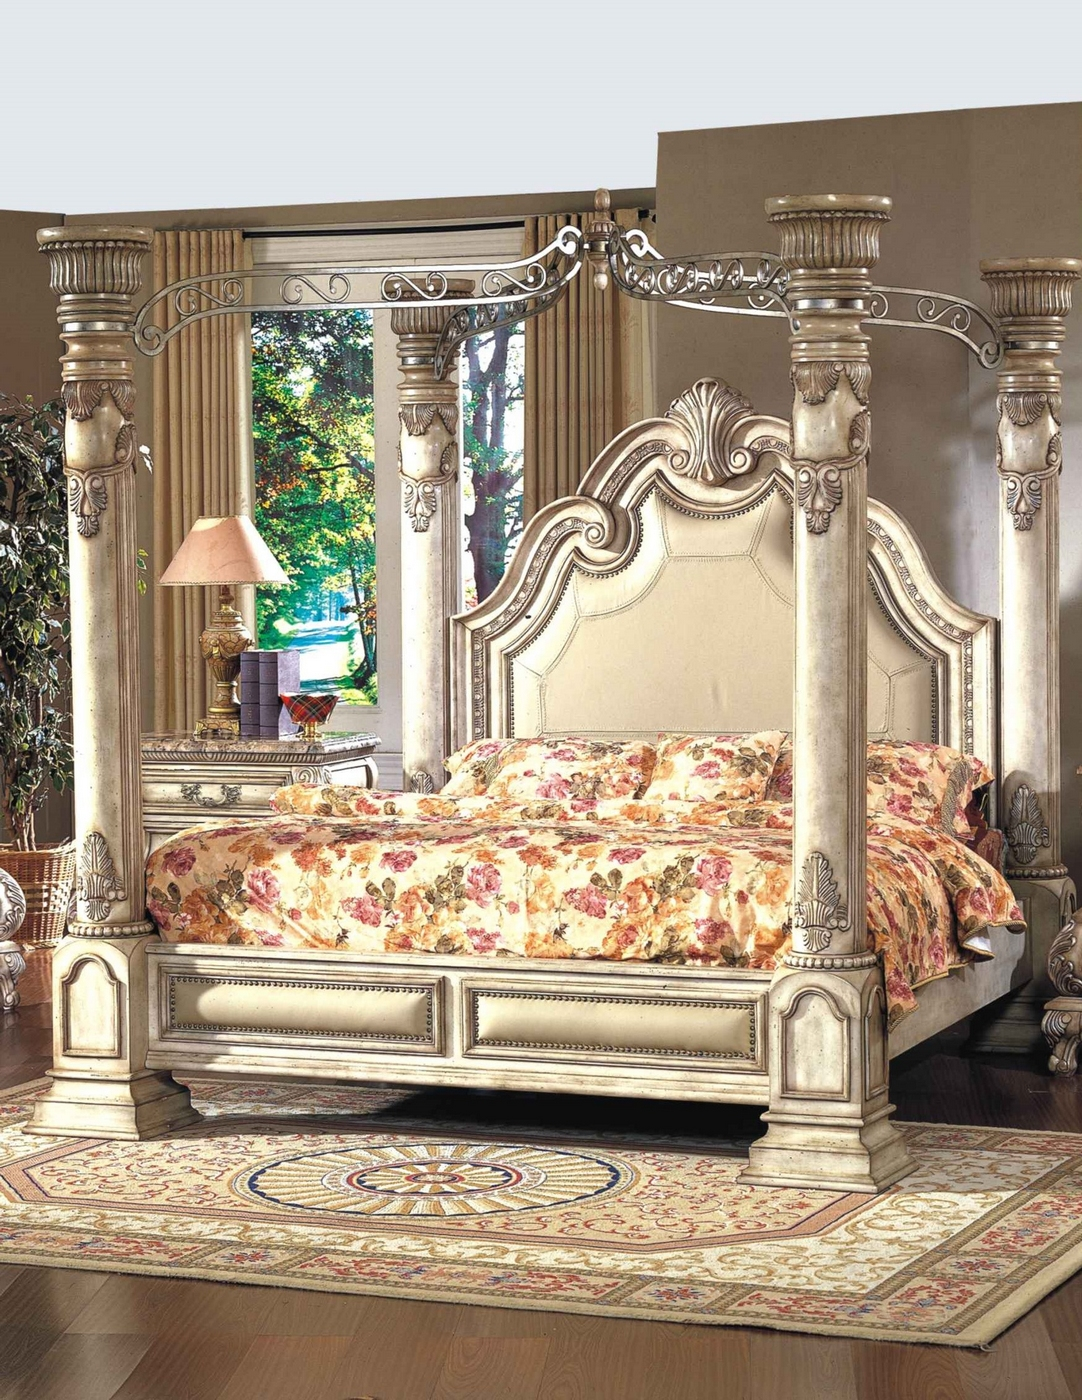 Victorian Style King Size Canopy Bed | Antique White ...